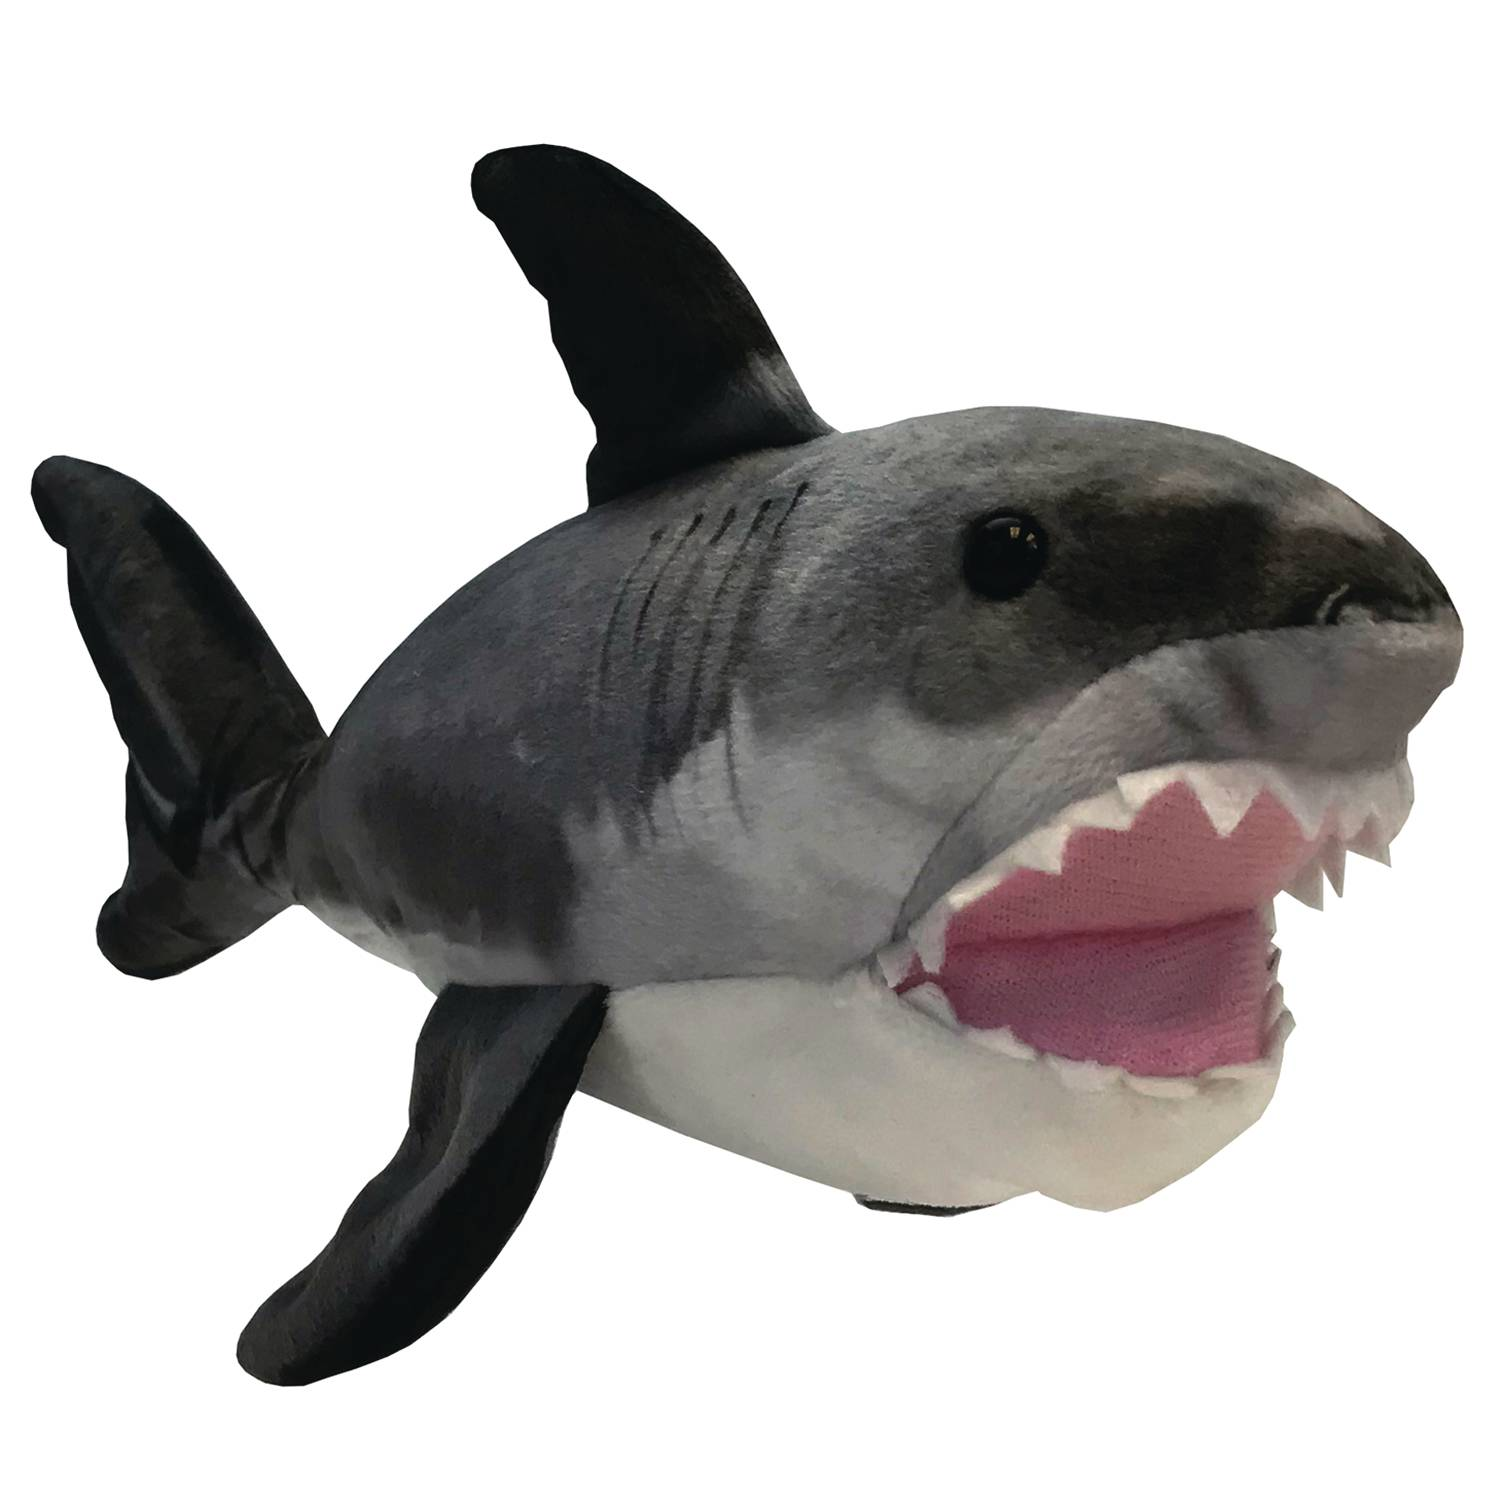 JAWS BRUCE THE SHARK 12IN PLUSH